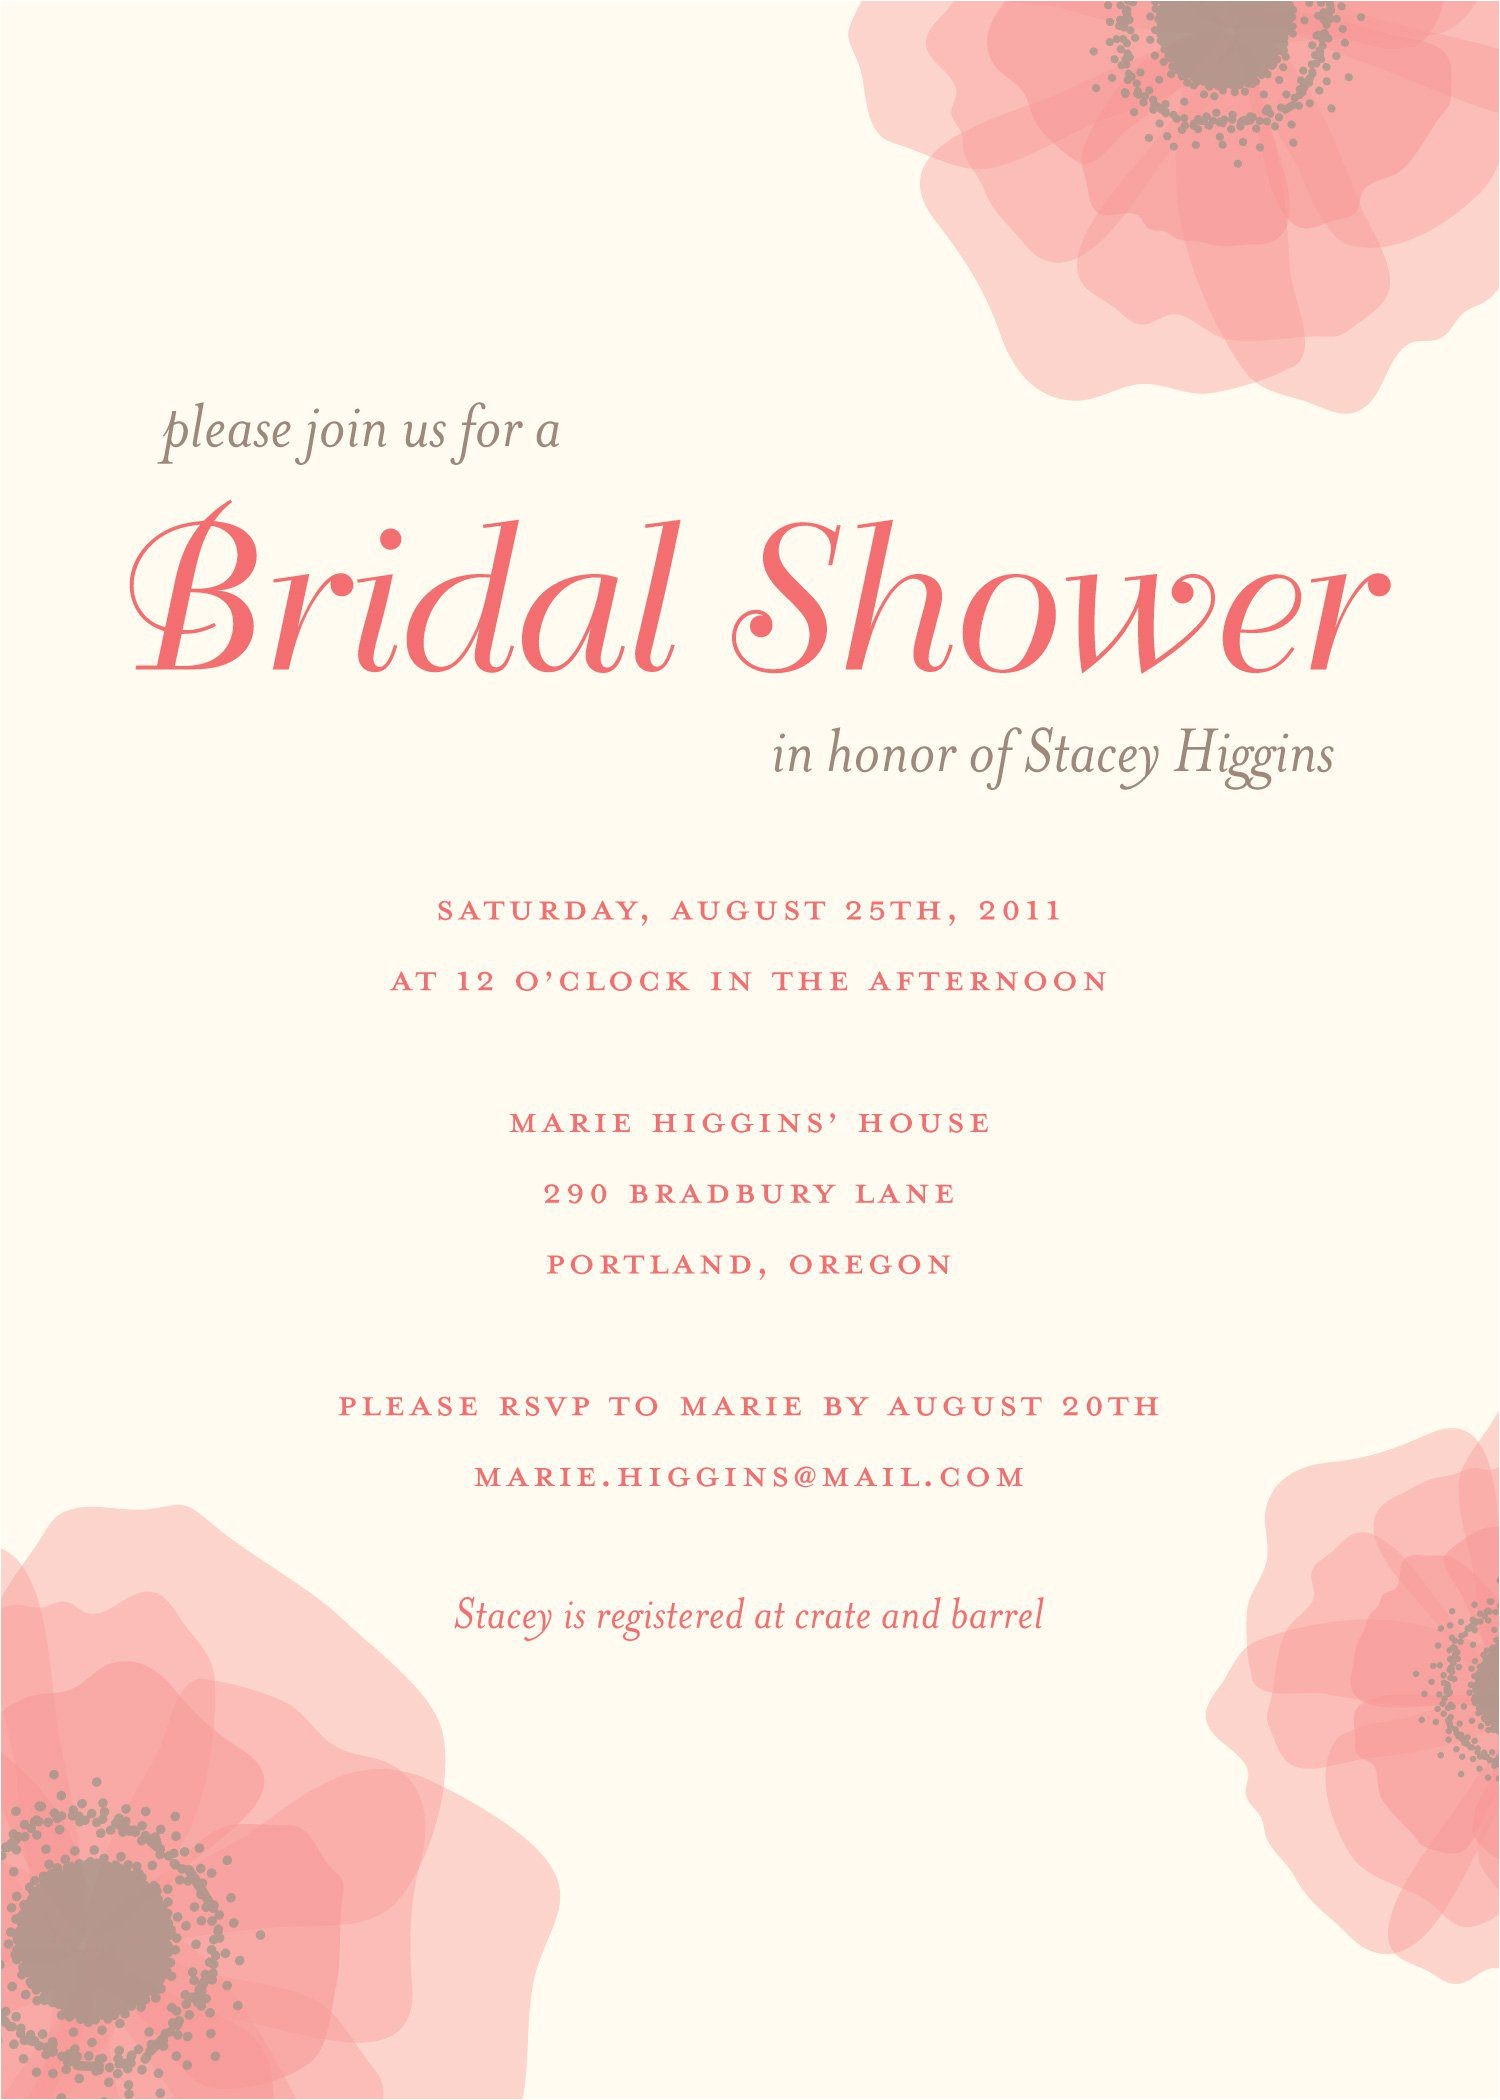 bridal shower invitations at office depot